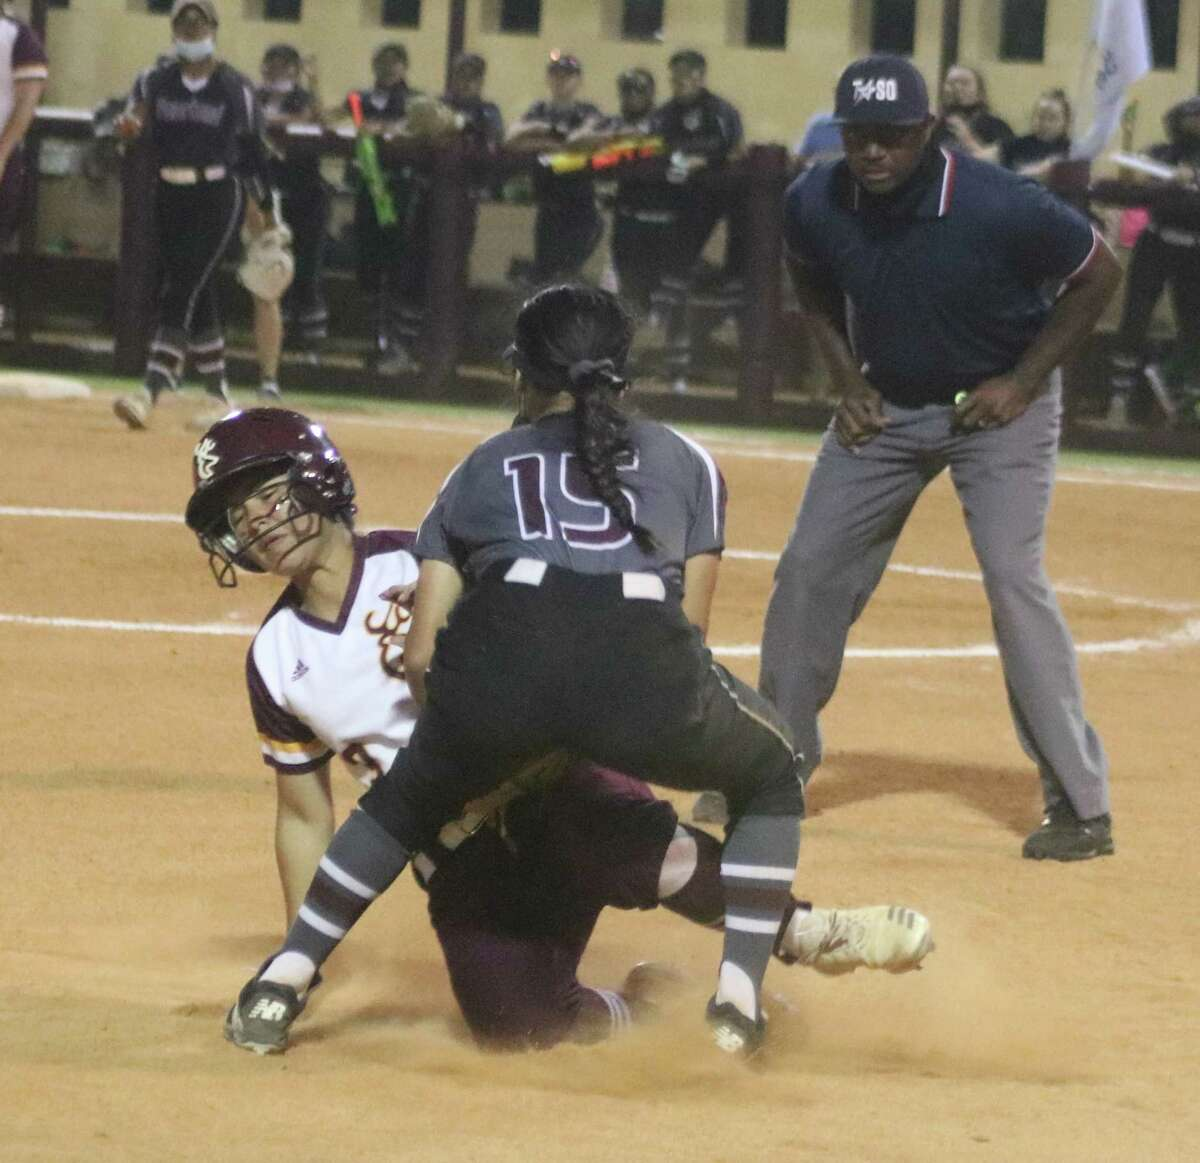 Deer Park's Linda Gobea is tagged out by Pearland's third baseman during sixth inning action Friday night. Gobea was attempting to become Deer Park's first runner to reach third base.